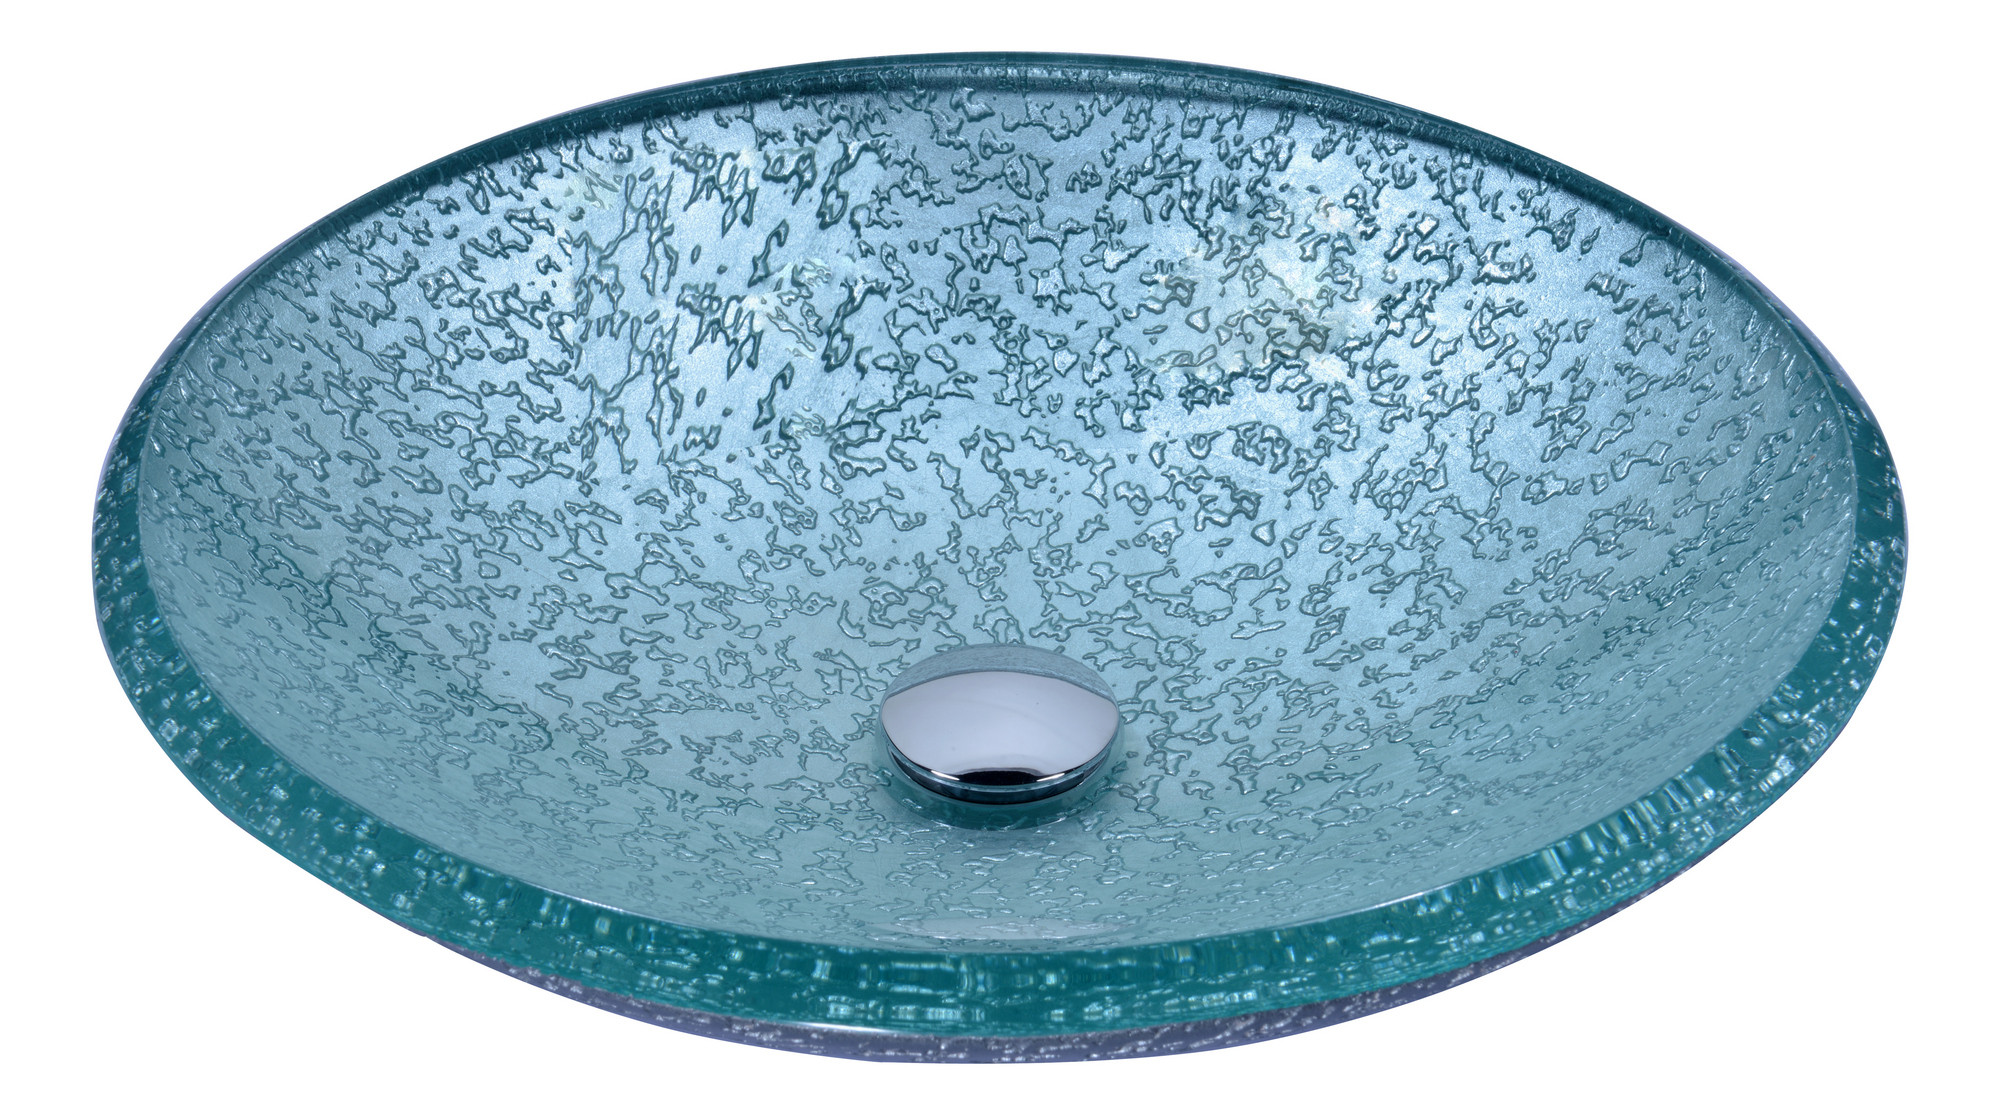 ANZZI LS-AZ208 Arc Series Tempered Deco-Glass Vessel Sink In Clear Glass